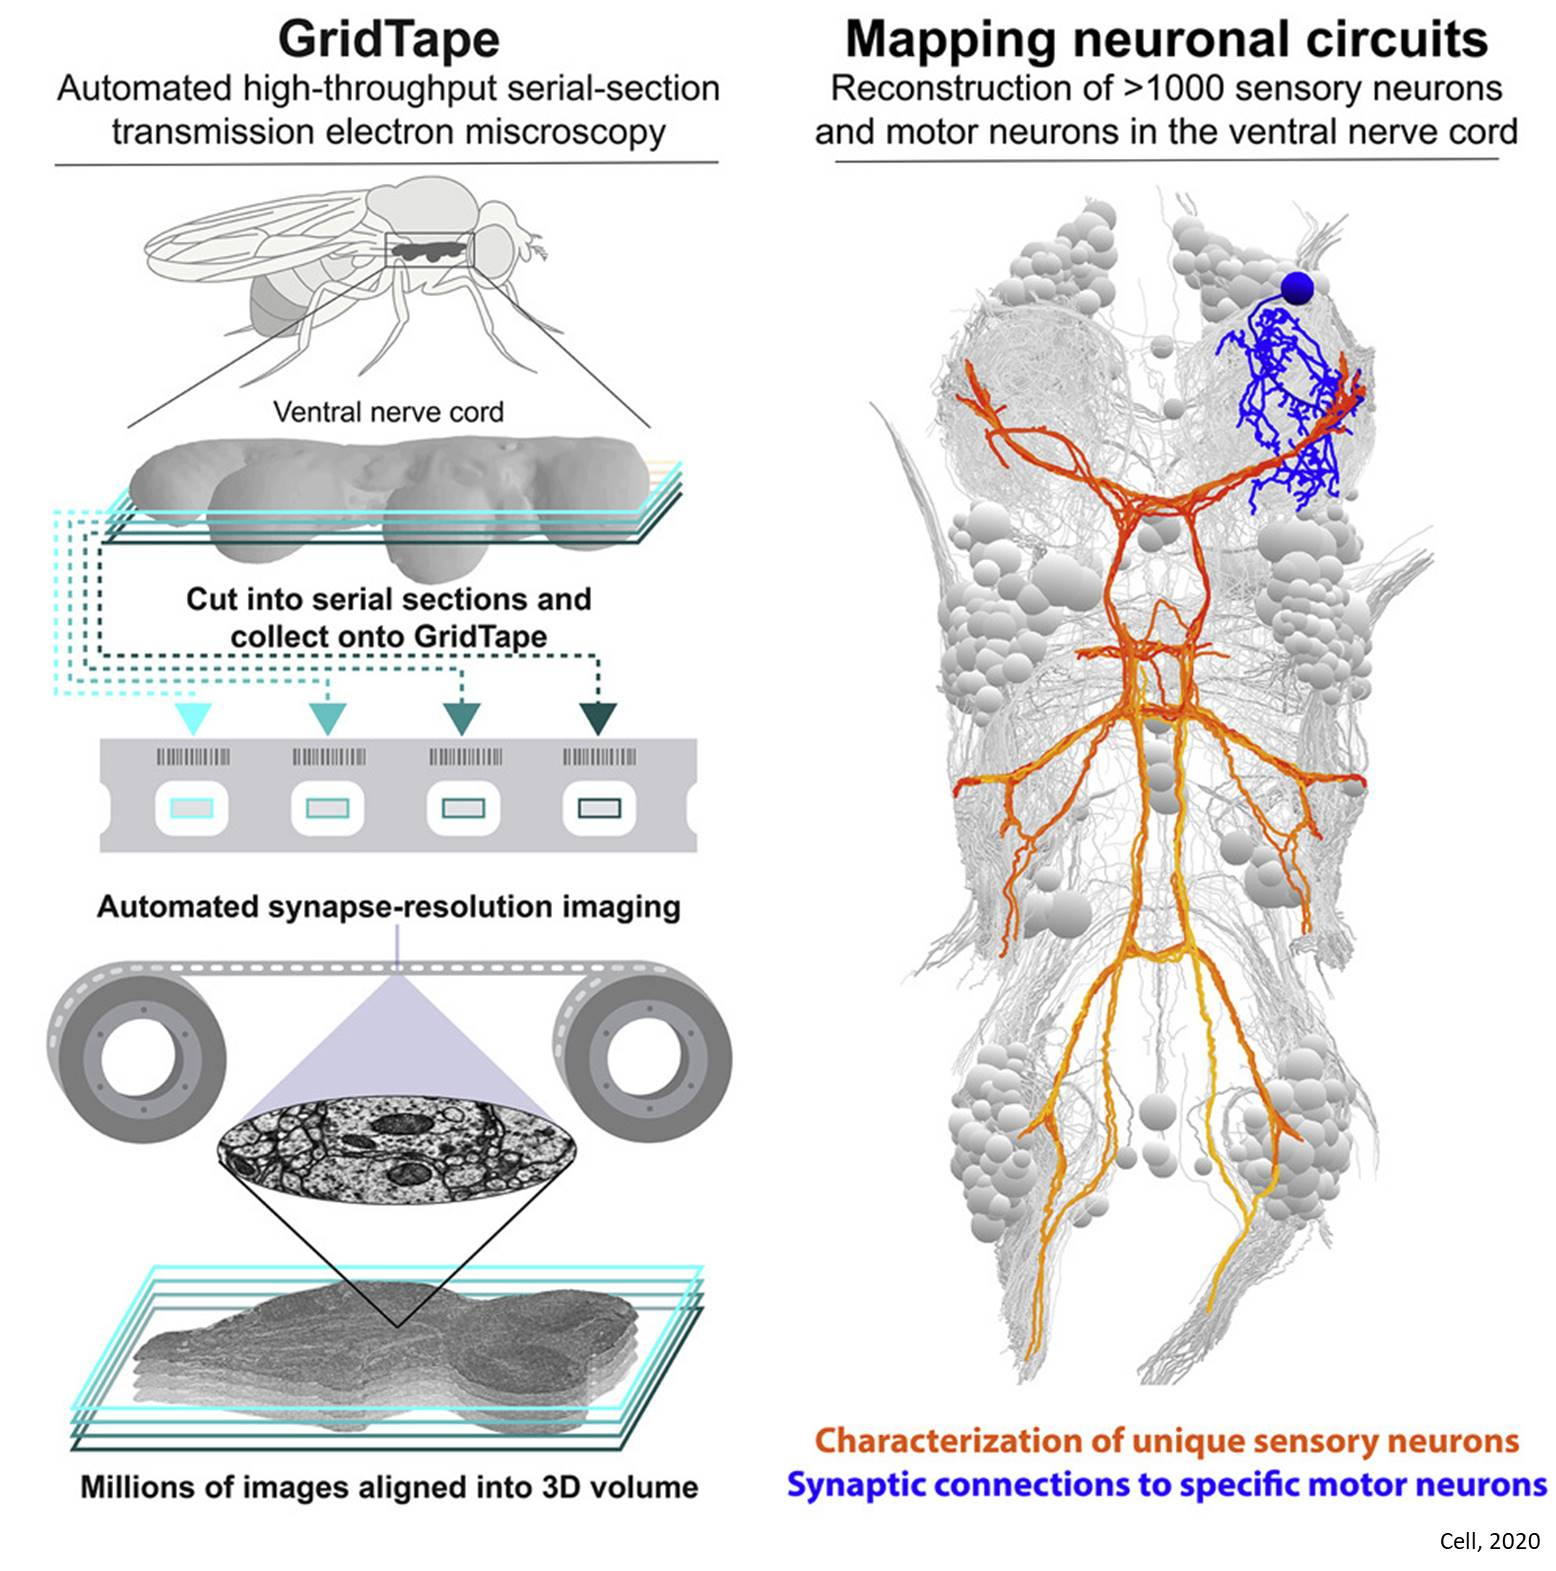 Motor neuron circuitry unraveled using automated electron microscopy platform